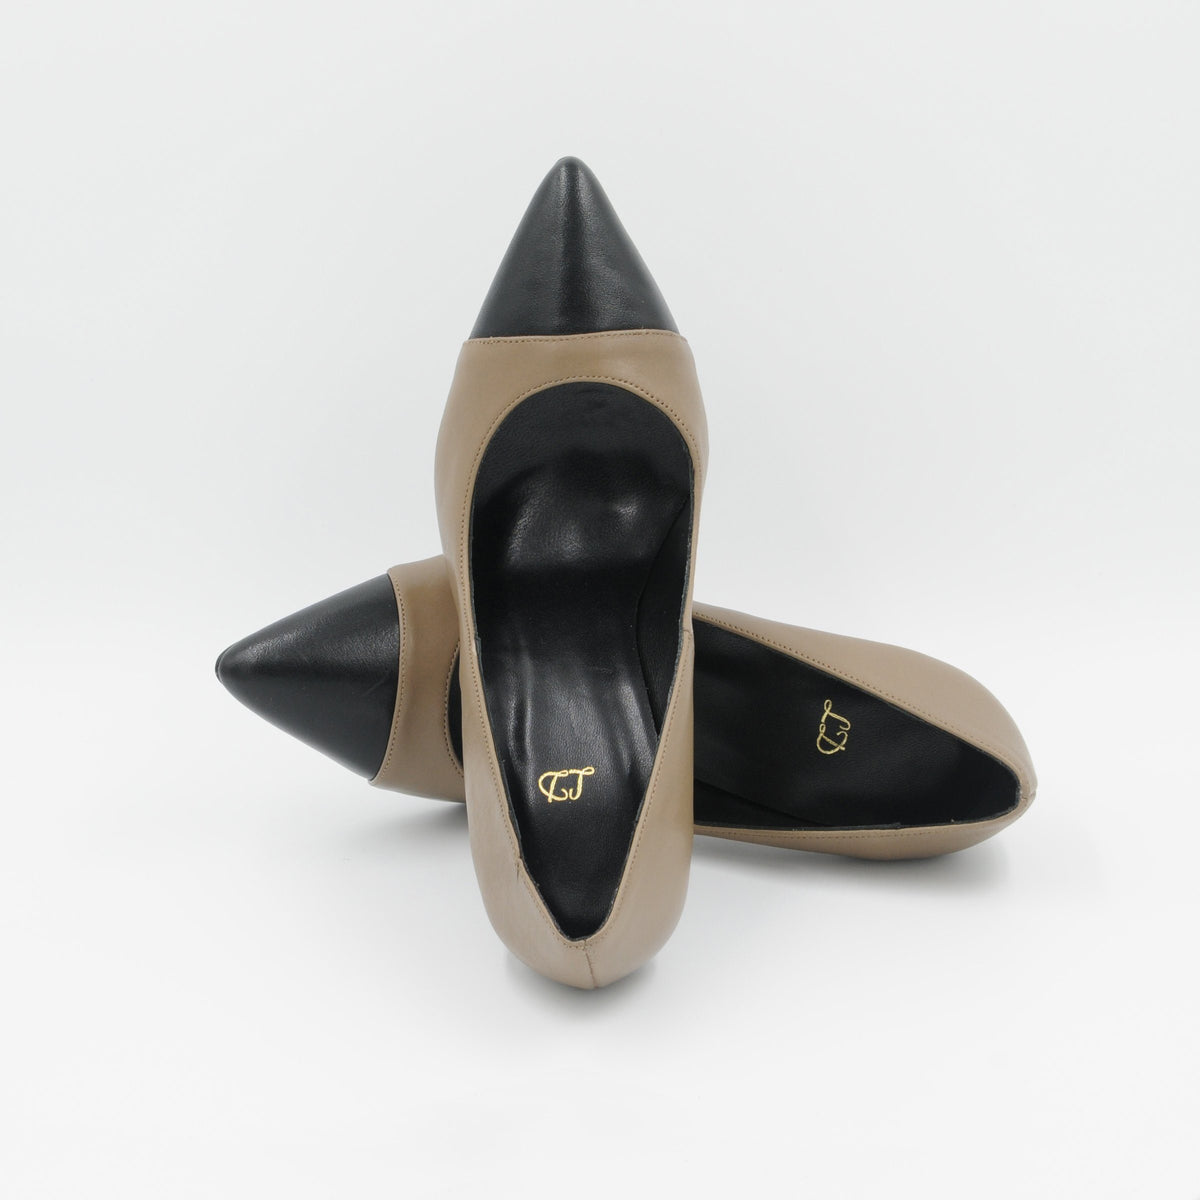 Lola Domecq Martina In Beige Handcrafted leather pumps